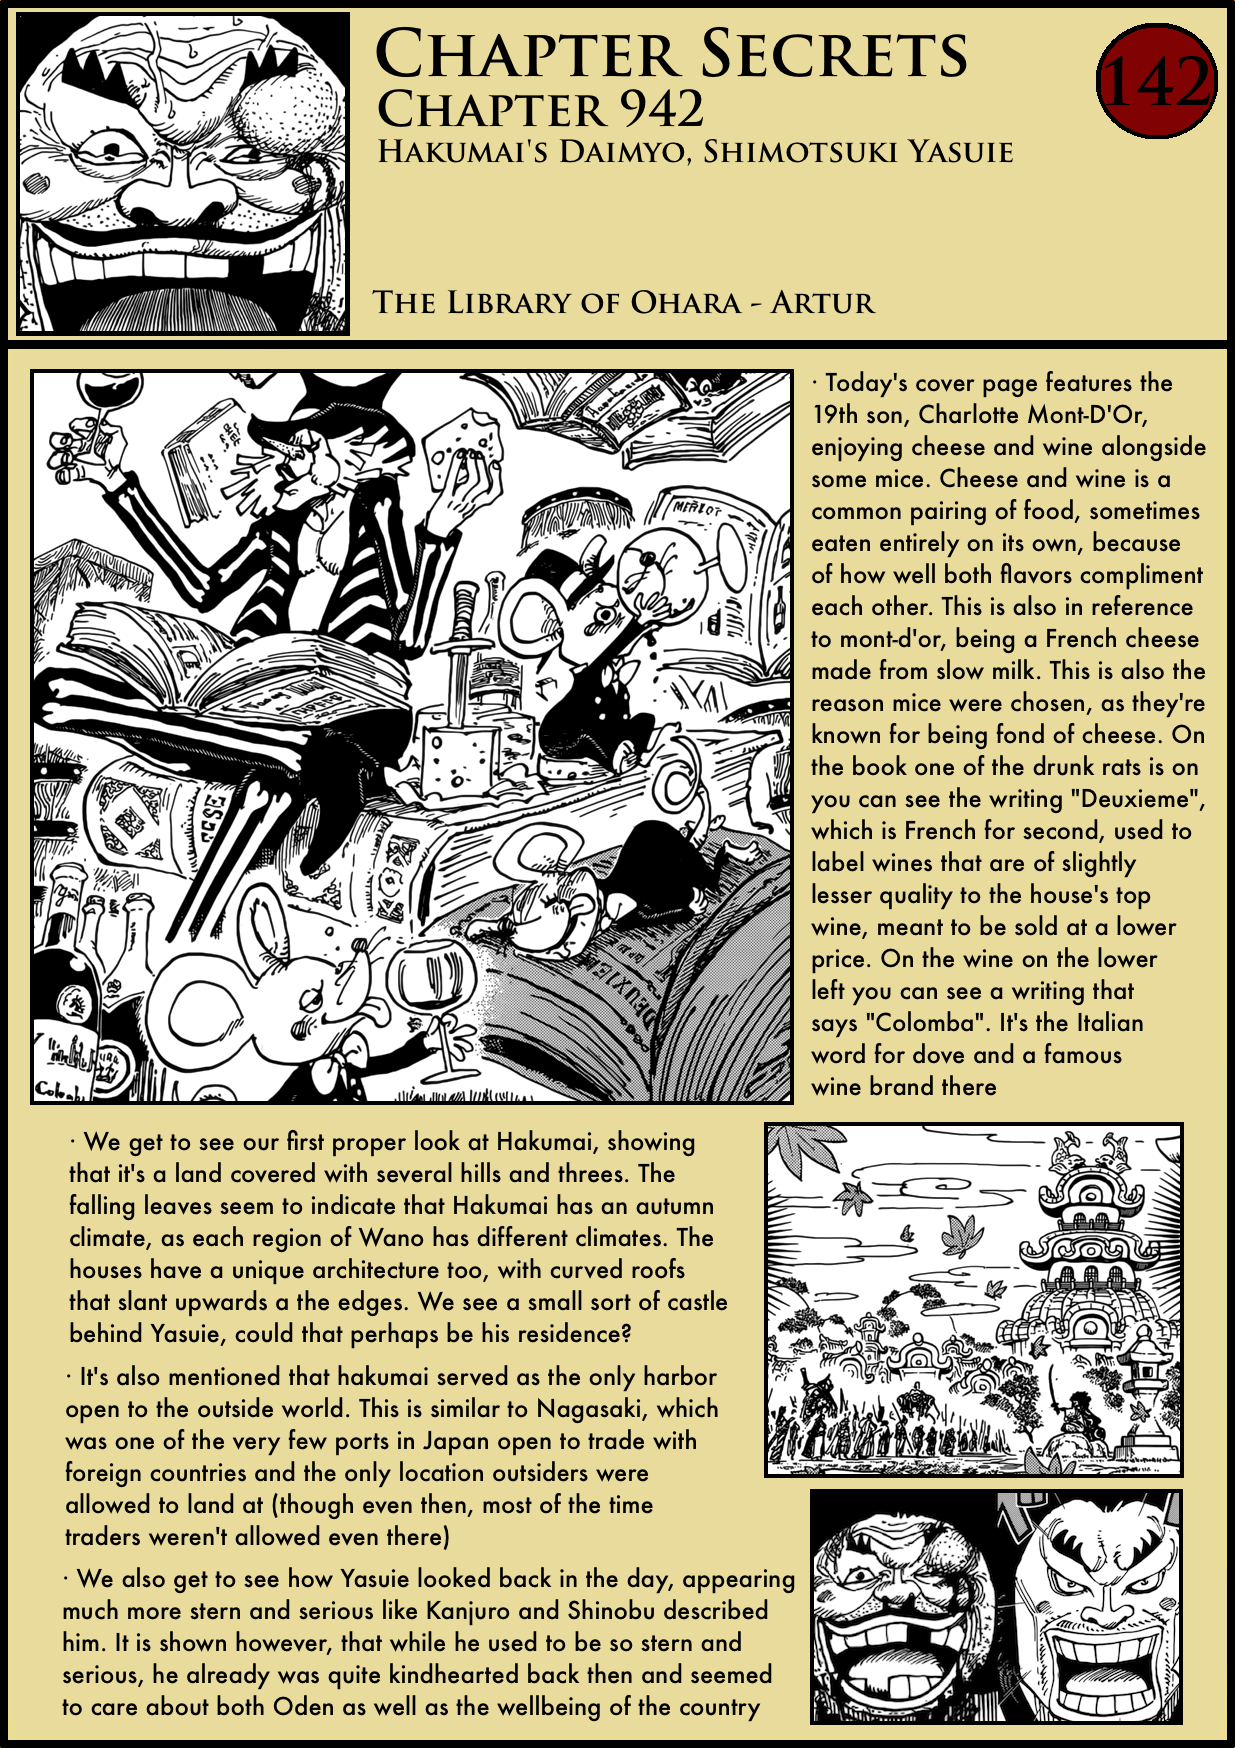 Chapter Secrets Chapter 942 In Depth Analysis The Library Of Ohara